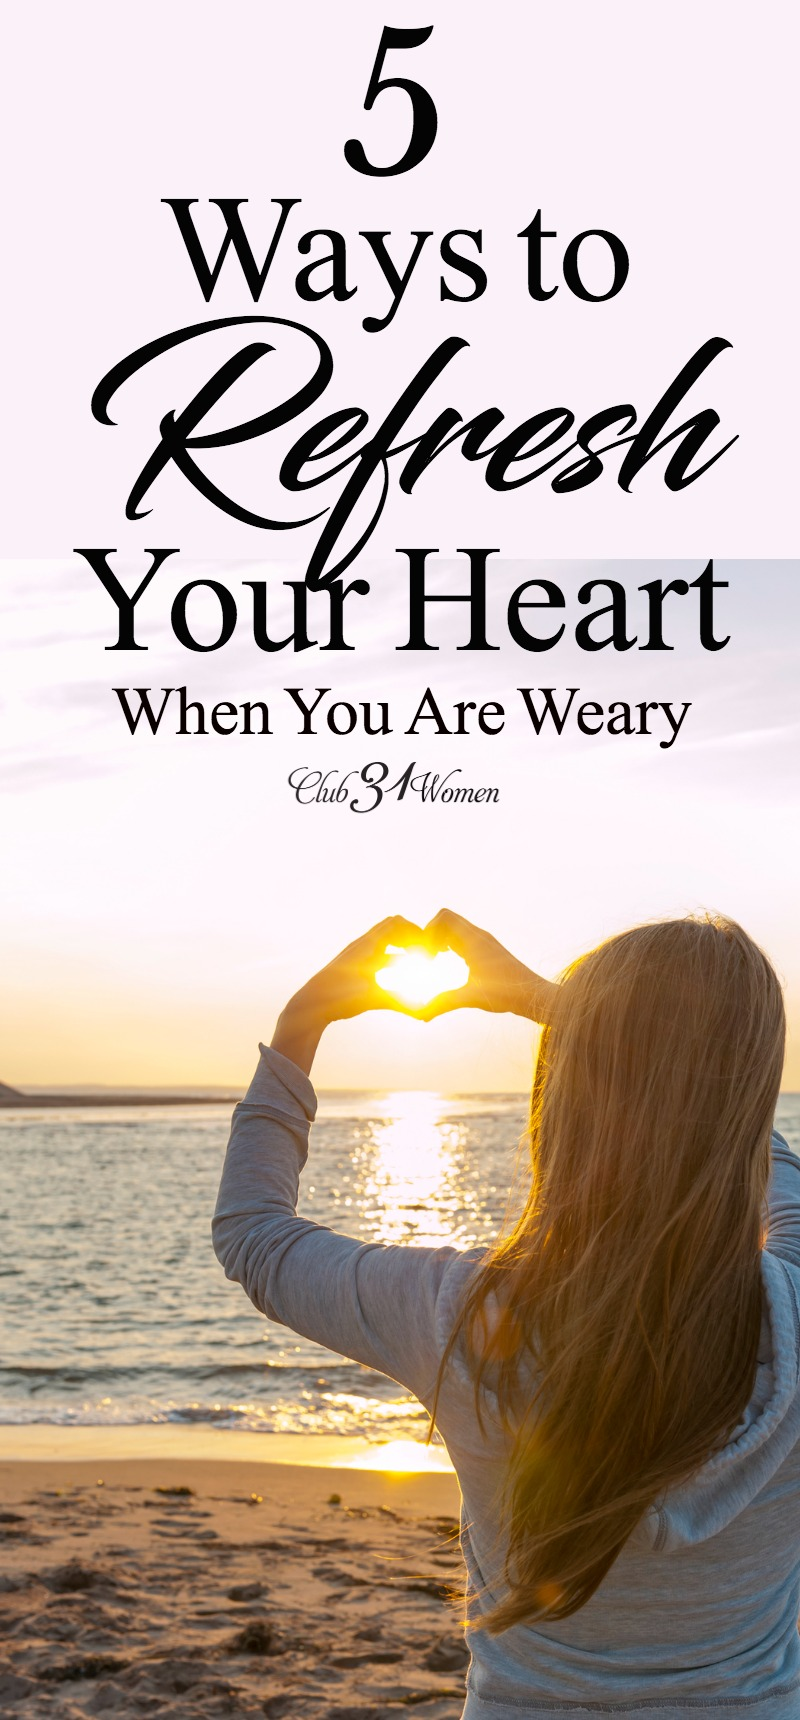 When your heart is weary, how can you refresh? When life drains you, how can you be filled again? God wants to meet you right where you are... via @Club31Women